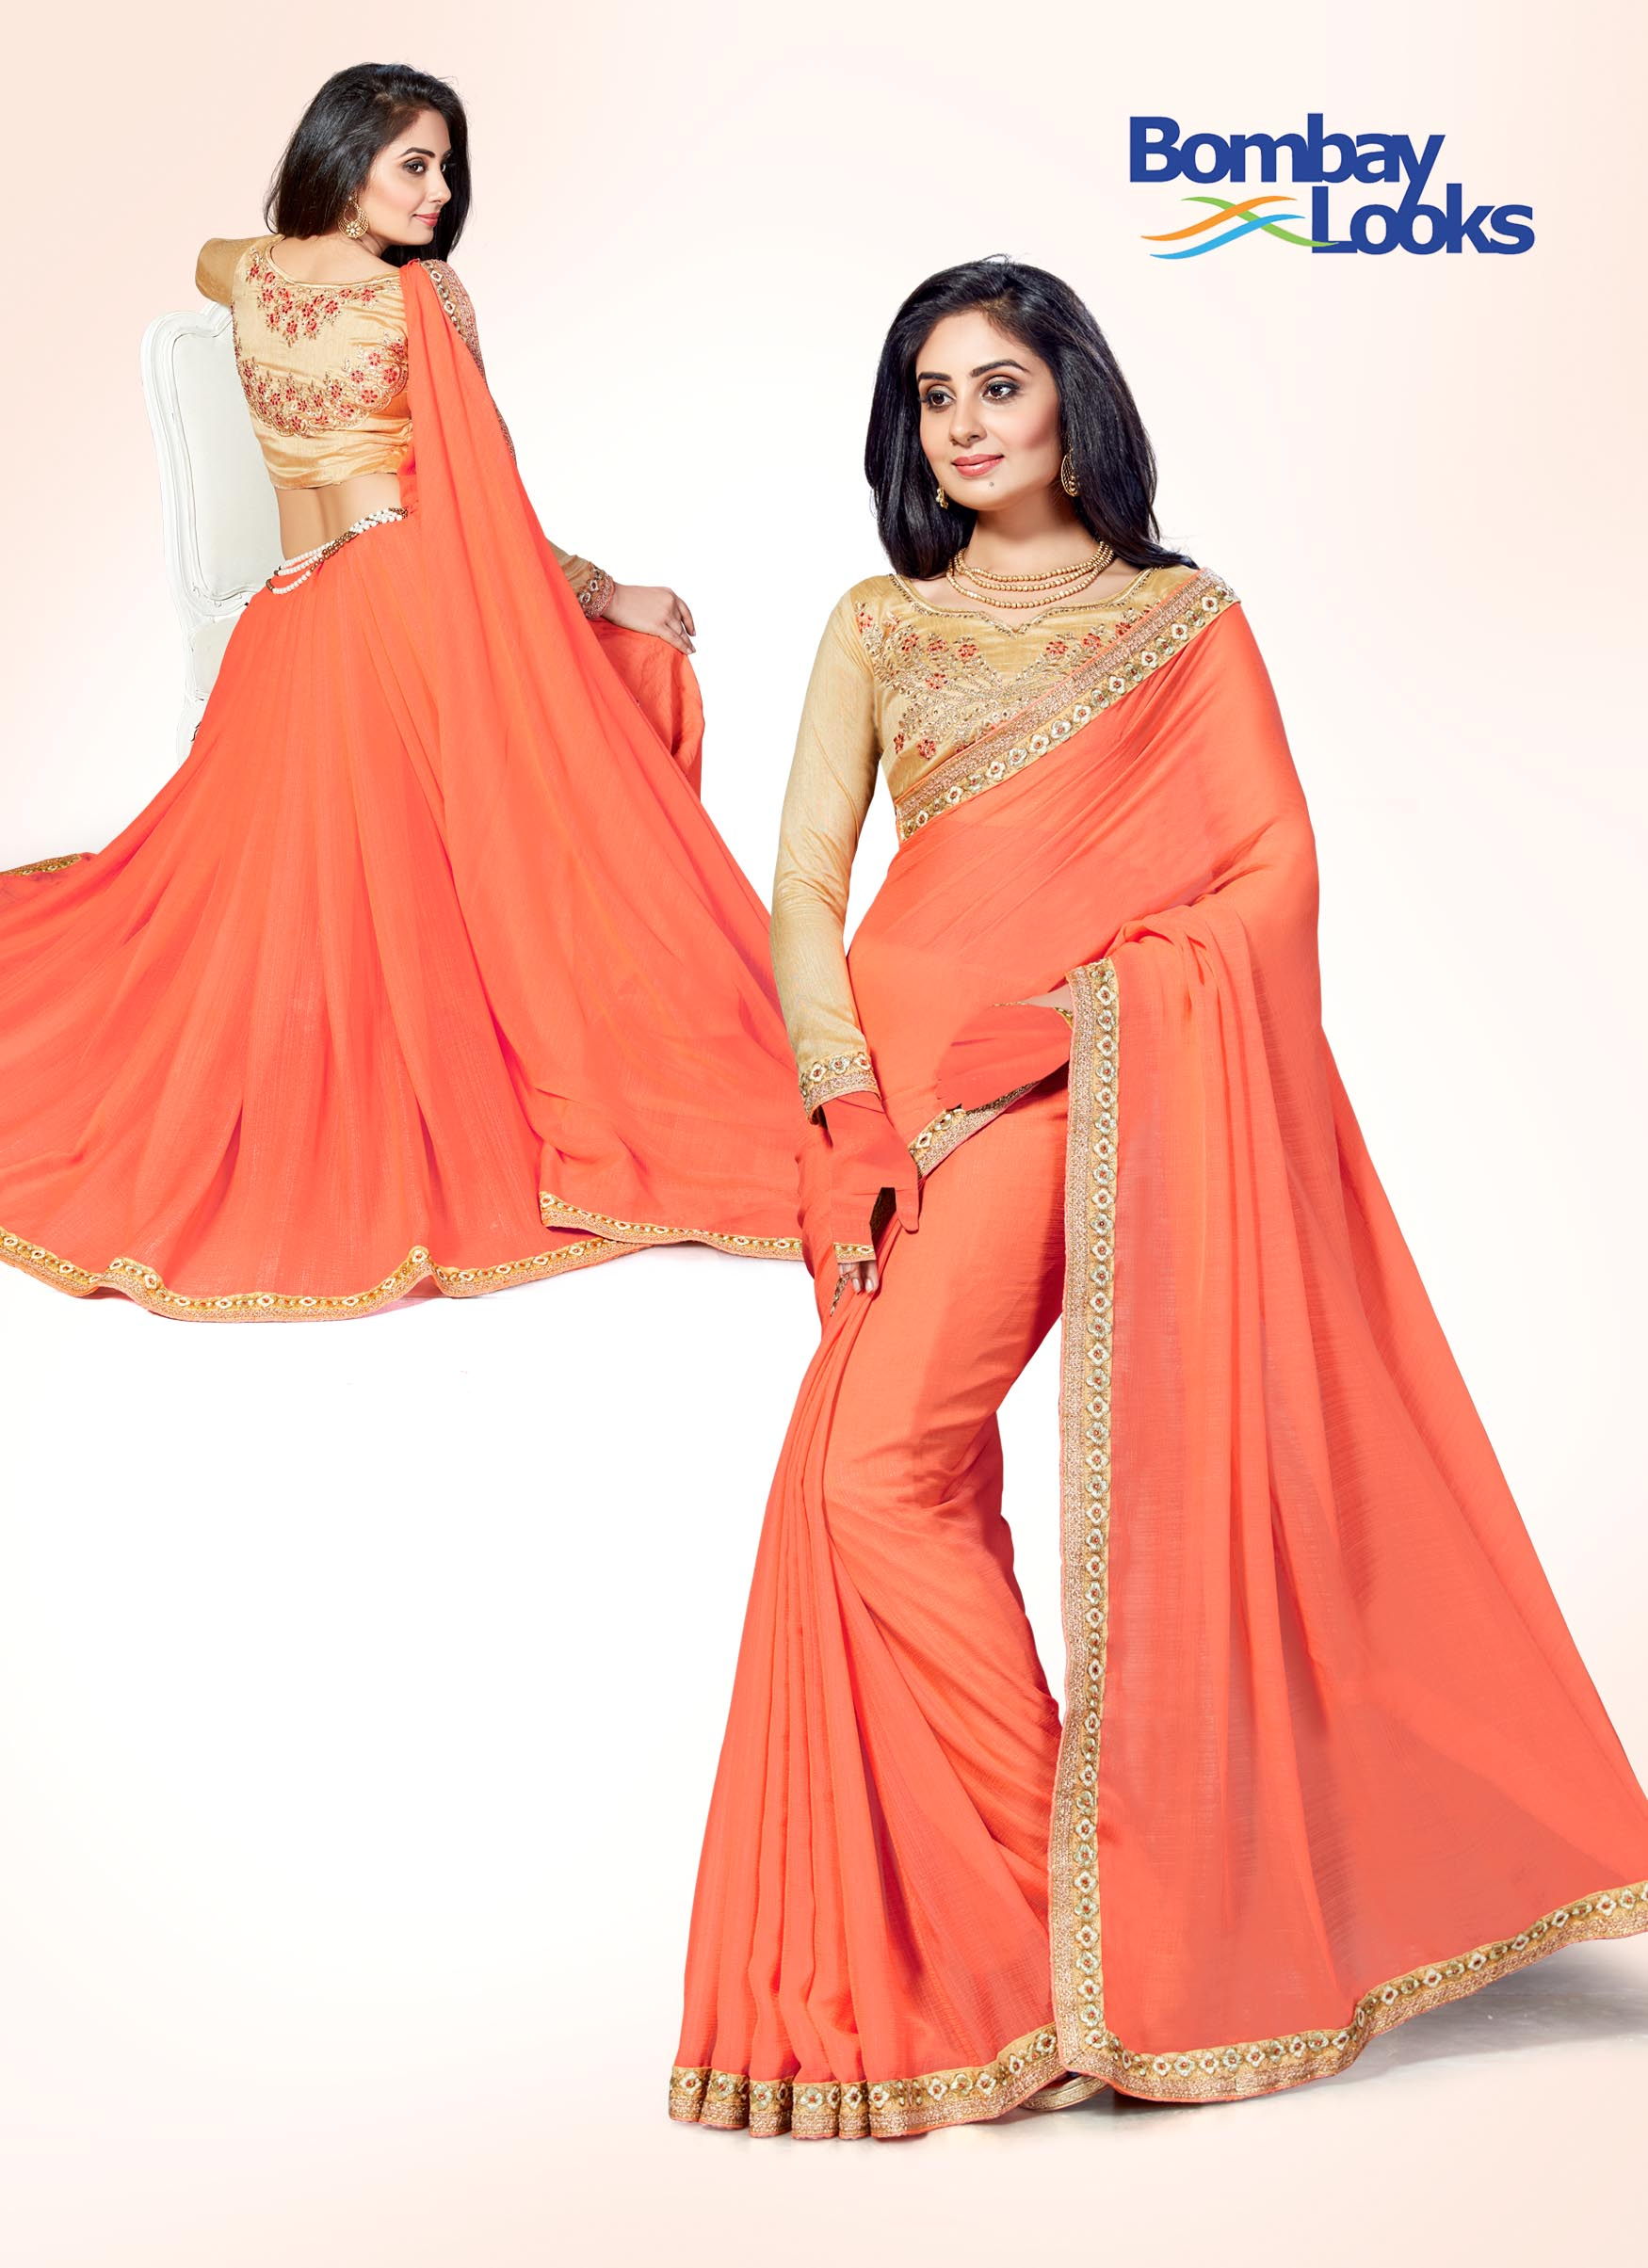 Stylish fresh peach saree with golden embroidered border